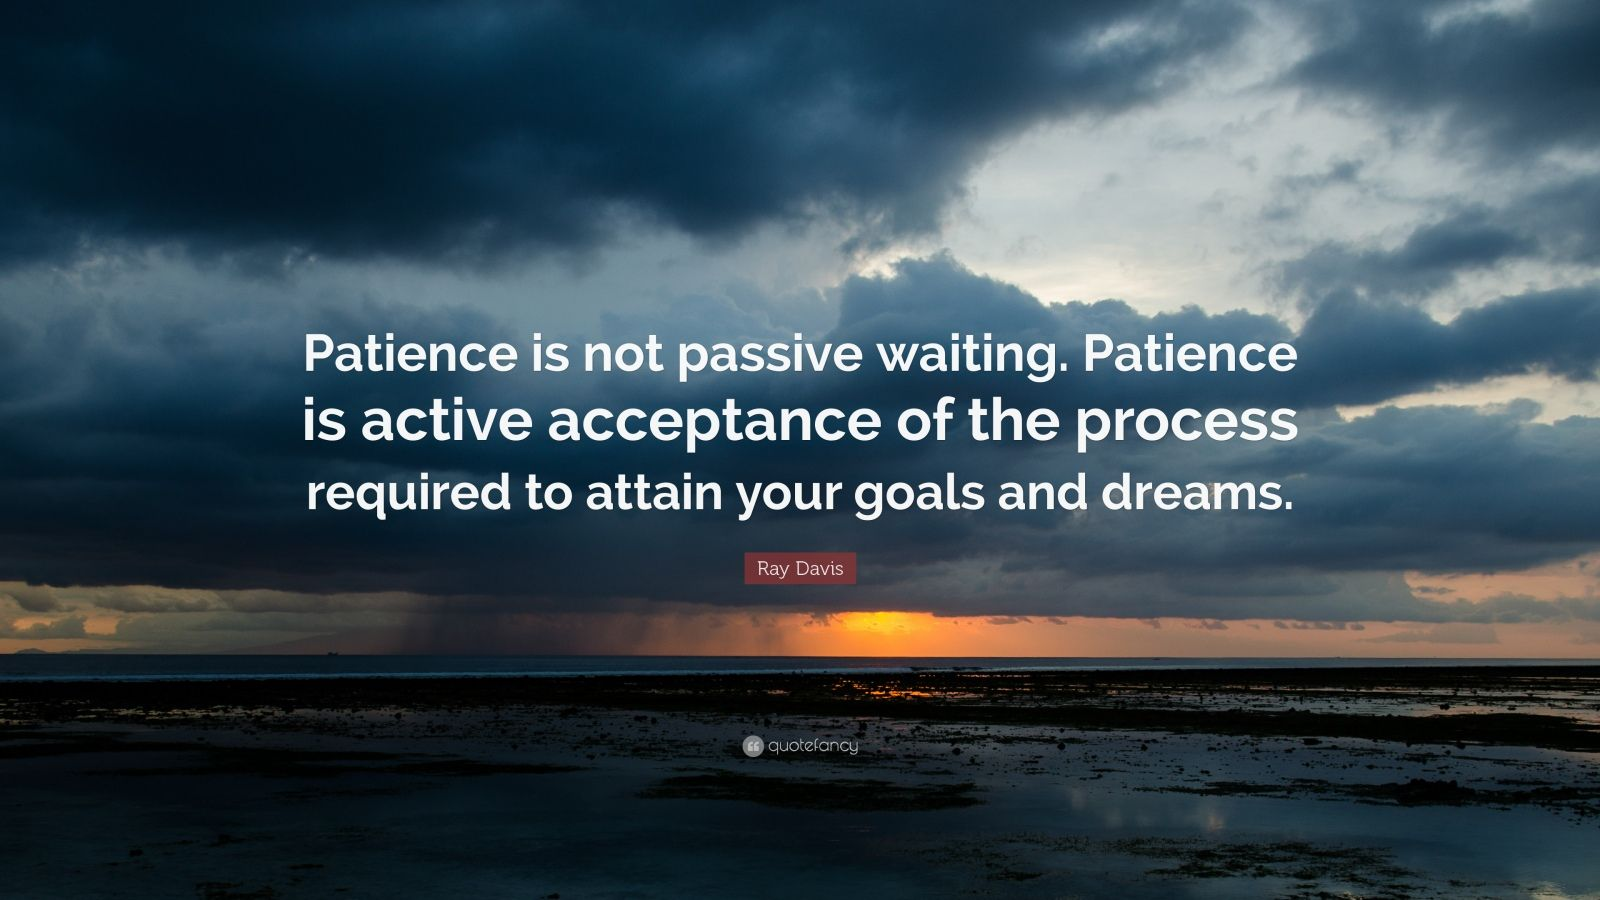 "Patience Quotes: ""Patience is not passive waiting. Patience is active acceptance of the process required to attain your goals and dreams."" — Ray Davis"